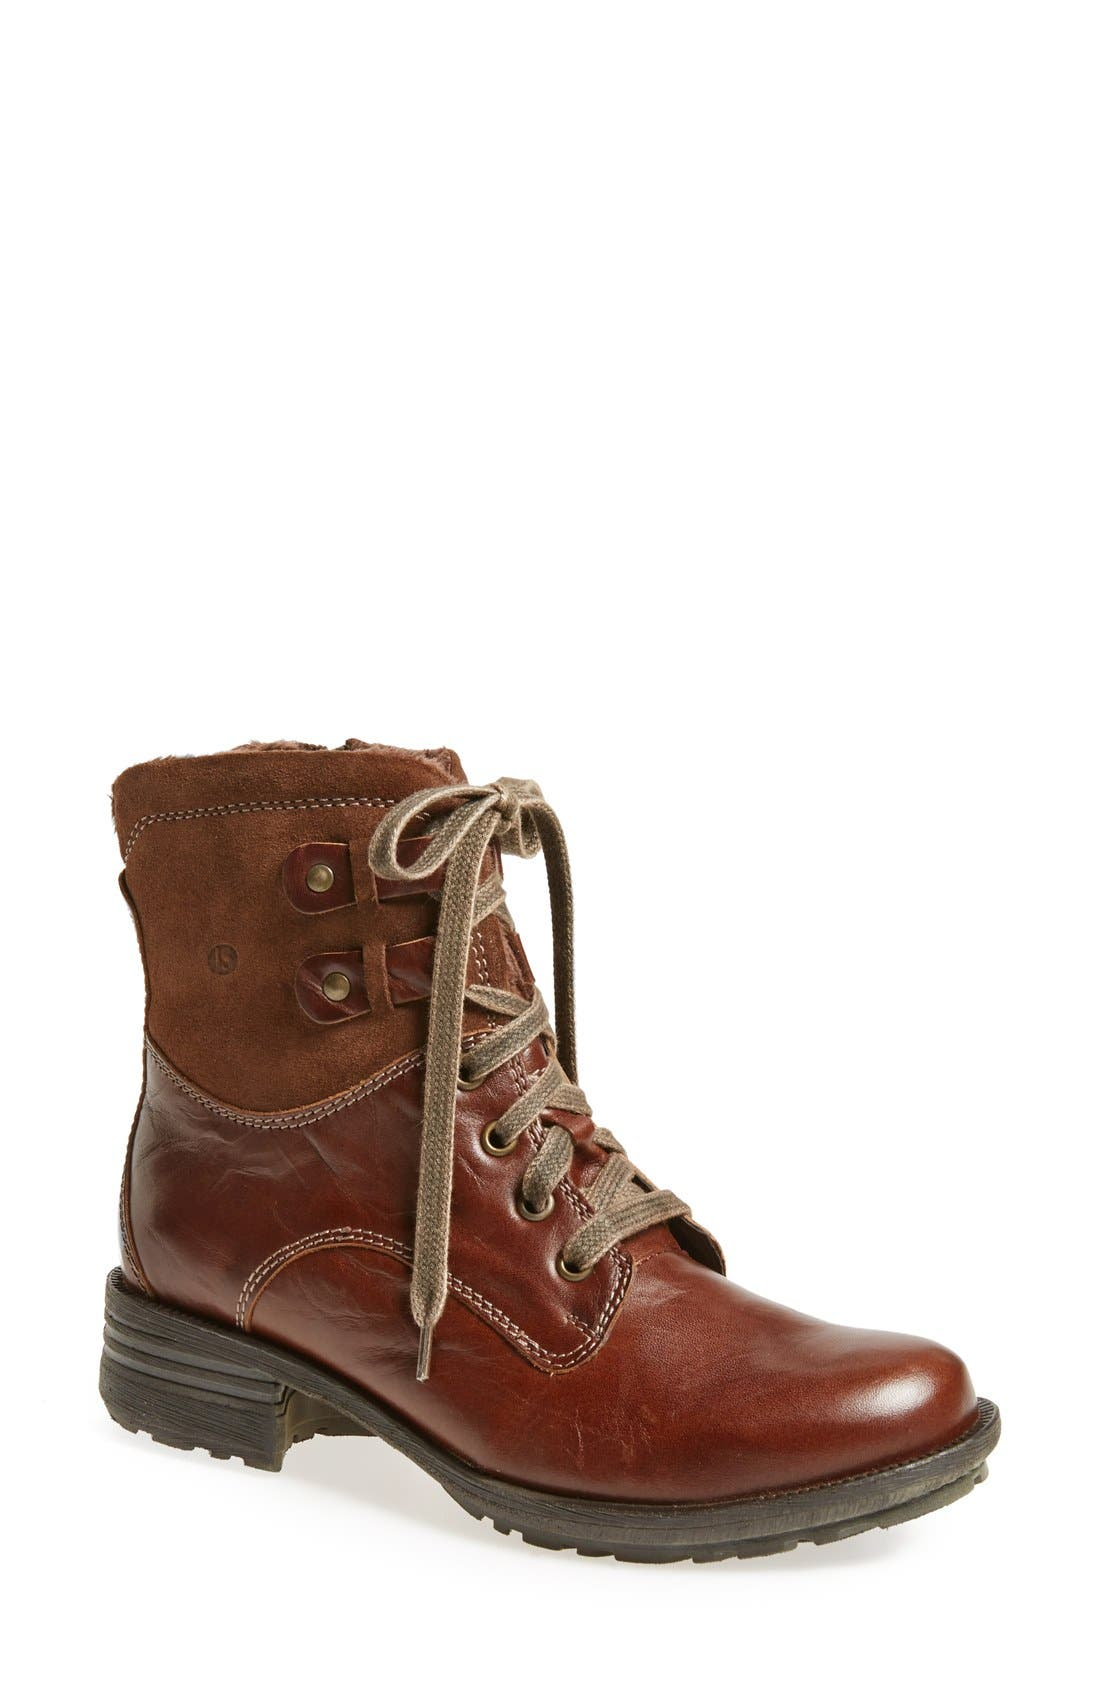 Alternate Image 1 Selected - Josef Seibel 'Sandra 14' Boot (Women)